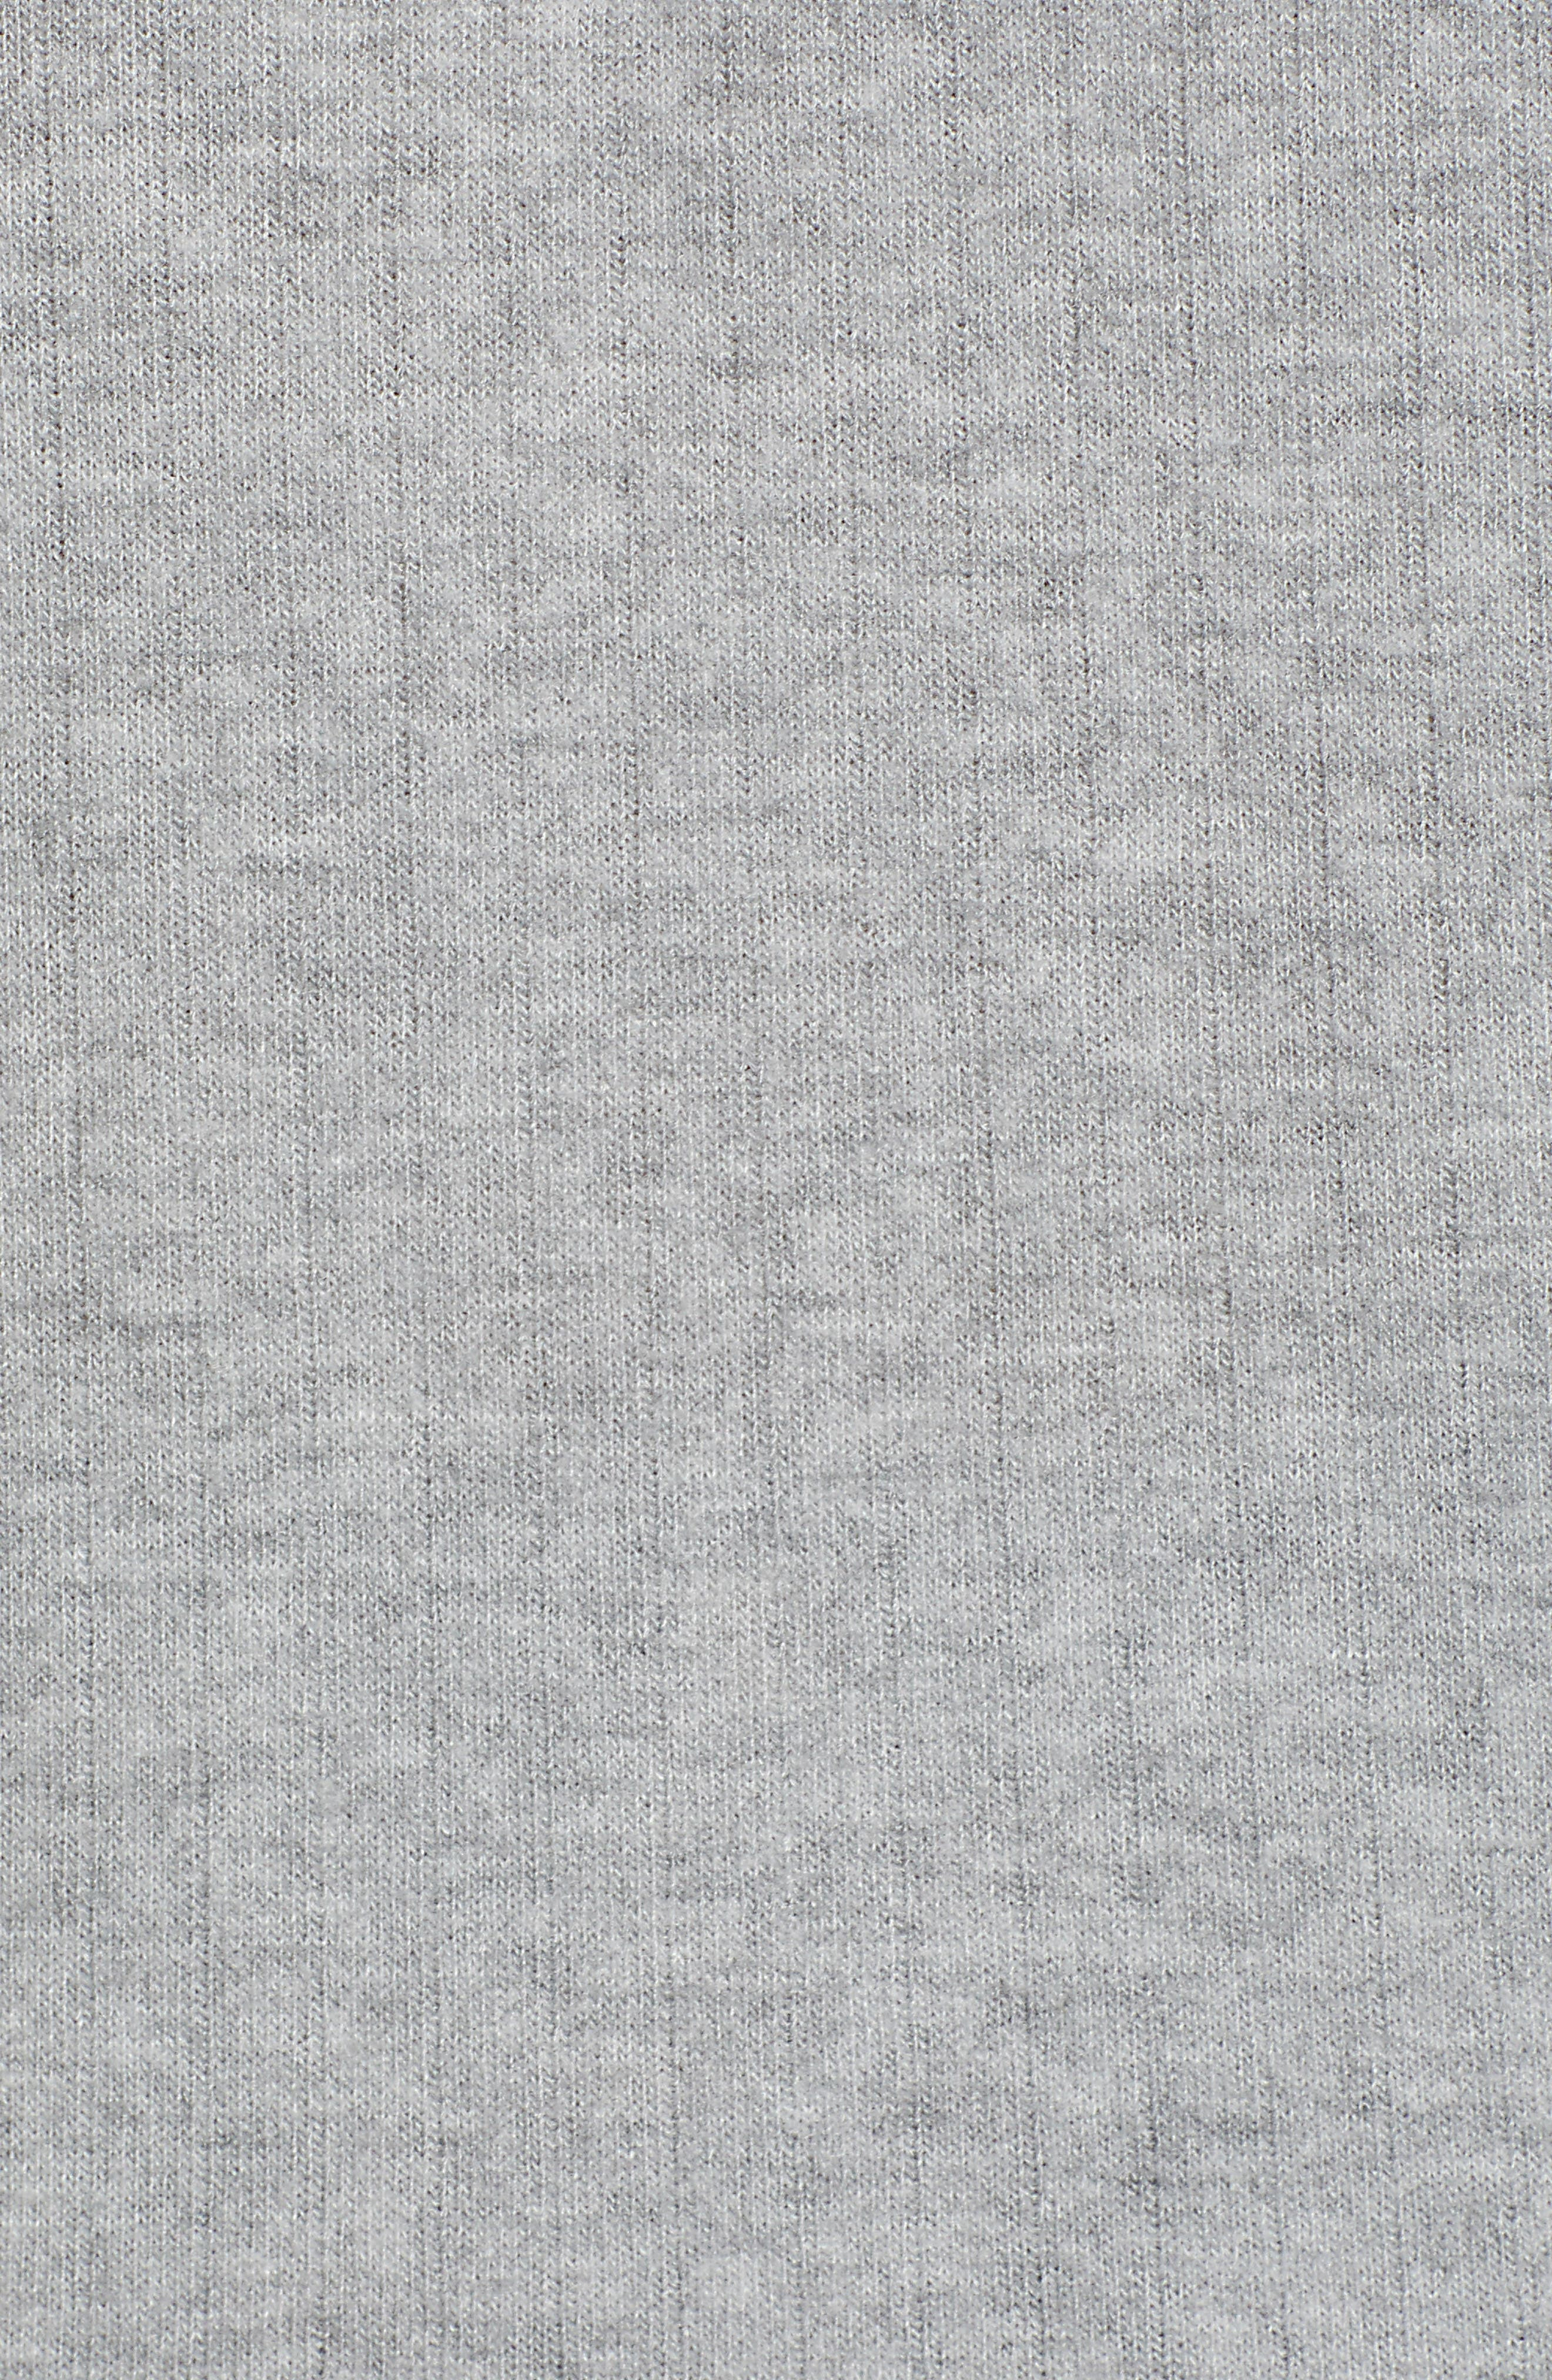 PST BY PROJECT SOCIAL T,                             e Cozy Tee,                             Alternate thumbnail 5, color,                             GREY